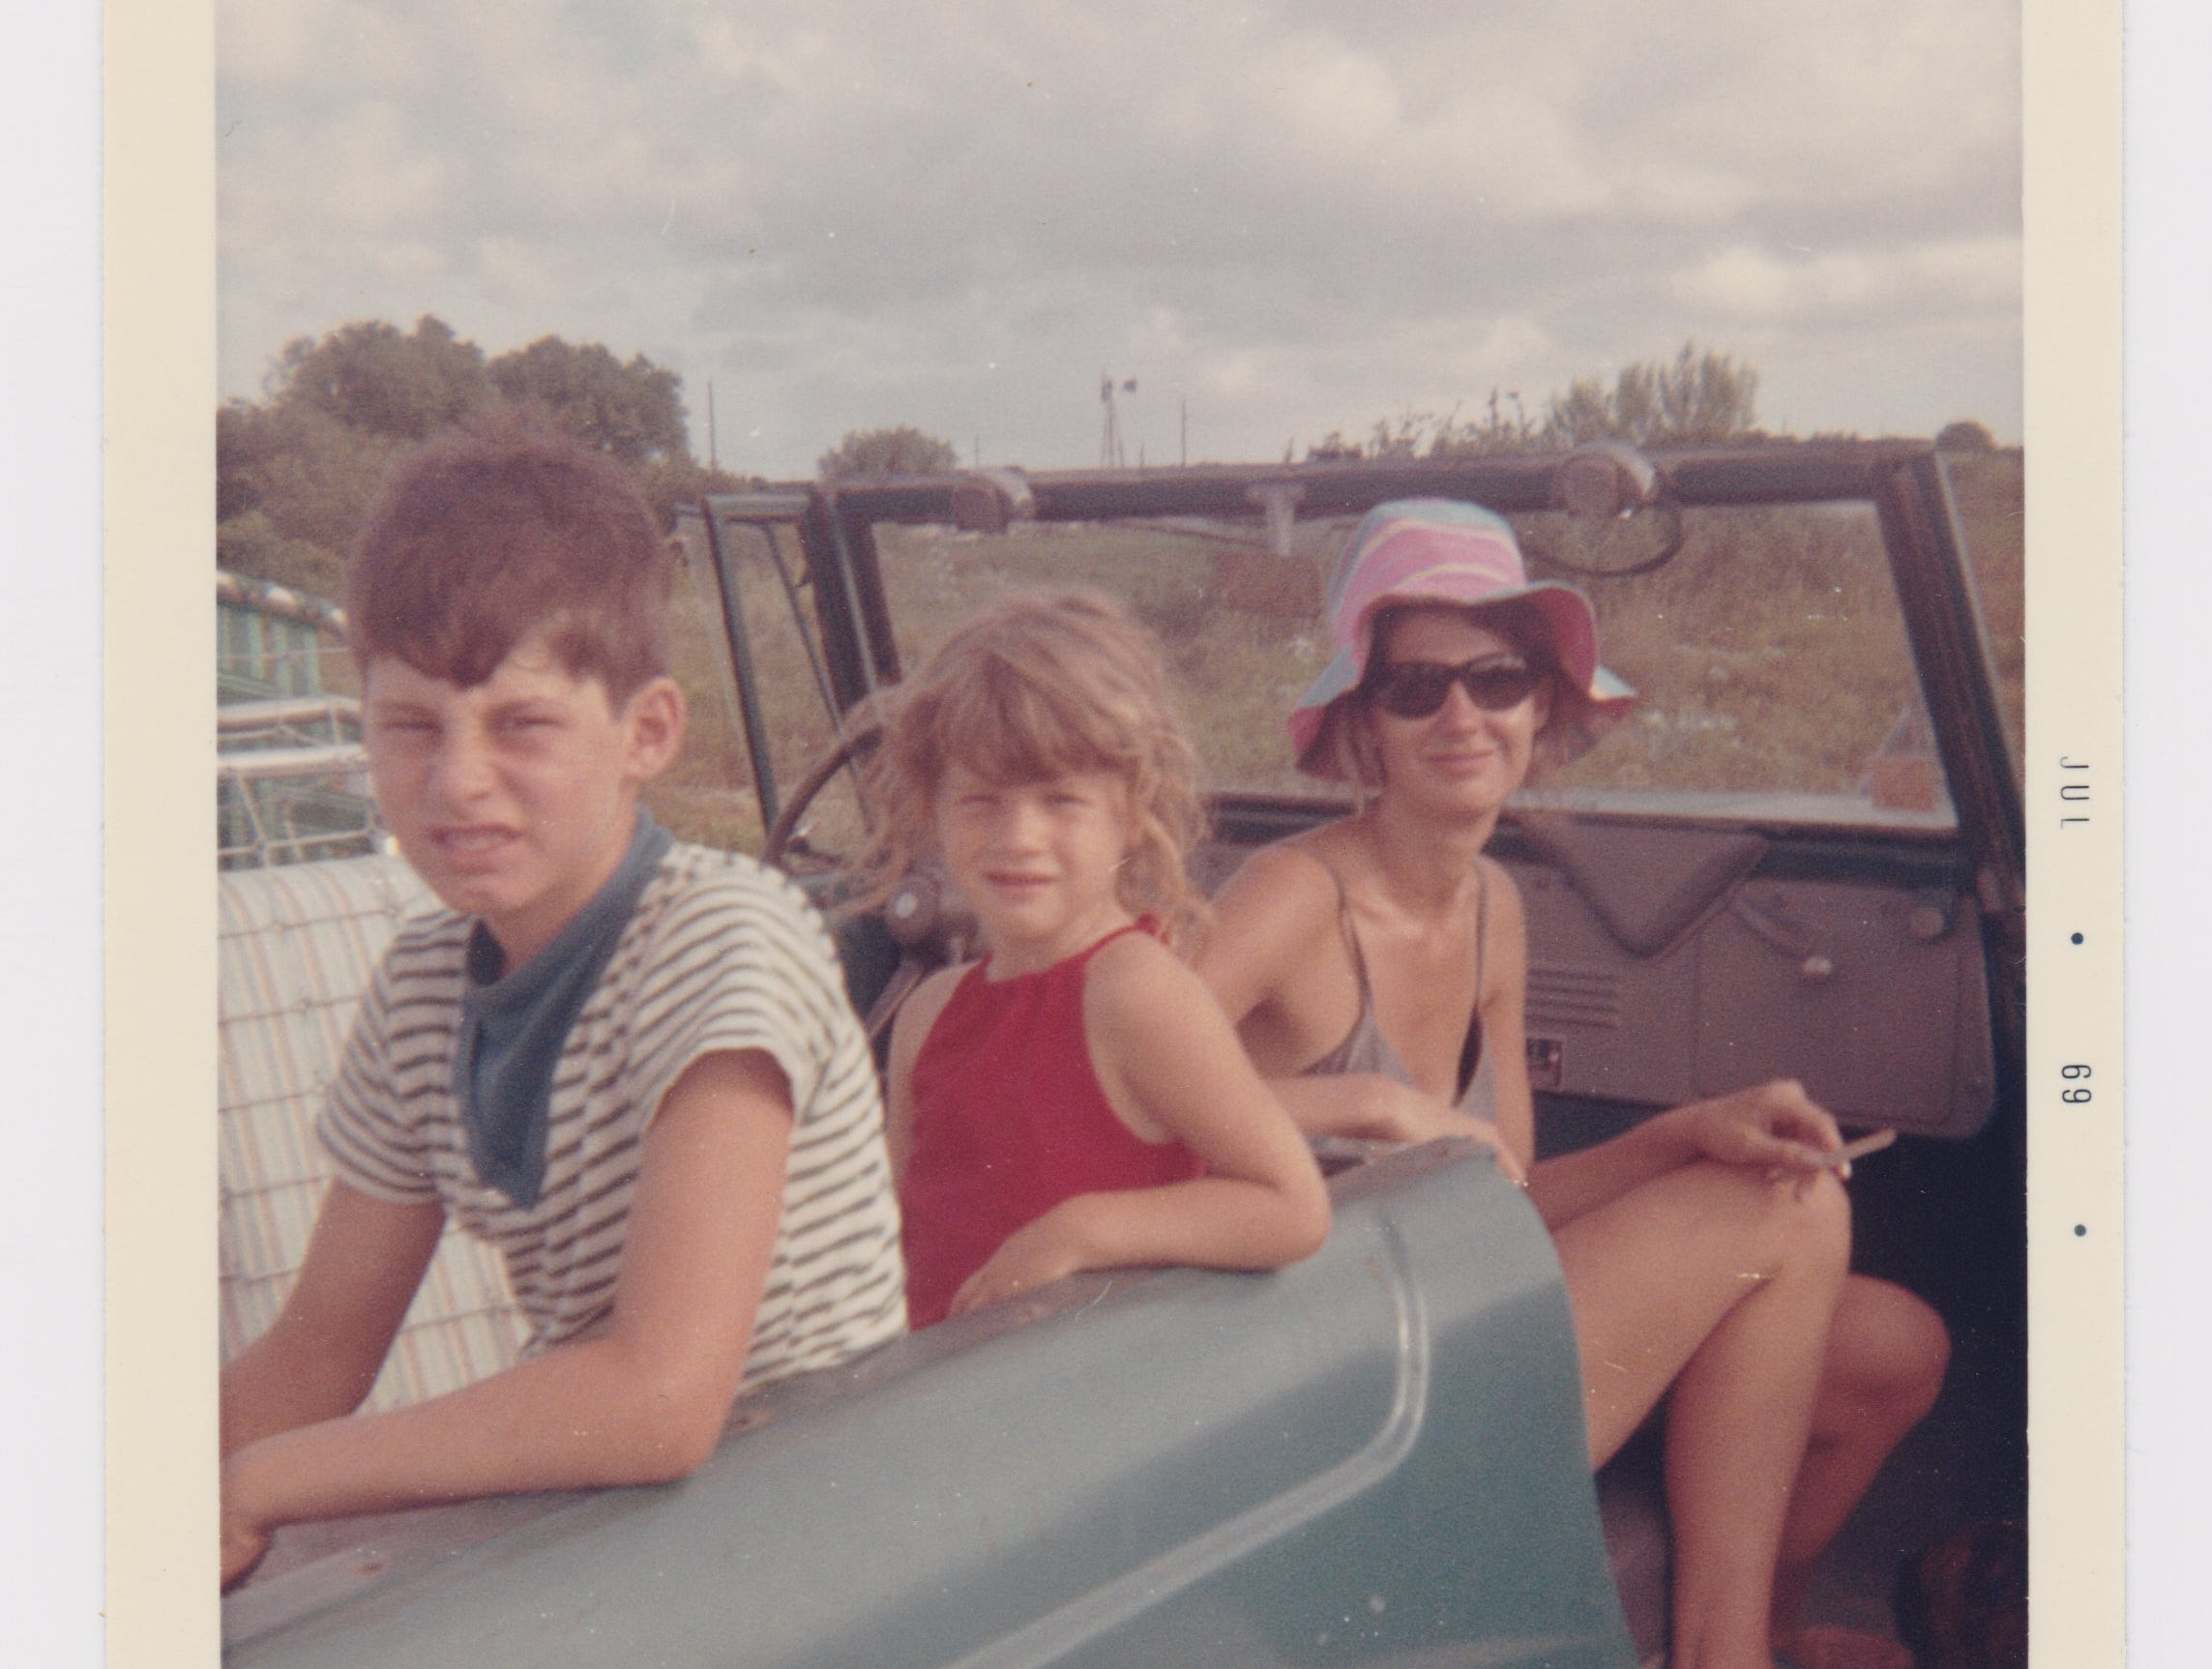 Tony Joe White often spent time on Padre Island fishing and boating when not performing his signature brand of swamp rock at nightclubs in Corpus Christi and Kingsville. Pictured is his wife Leann (right) with oldest son Jim Bob (left) and daughter Michelle (center).